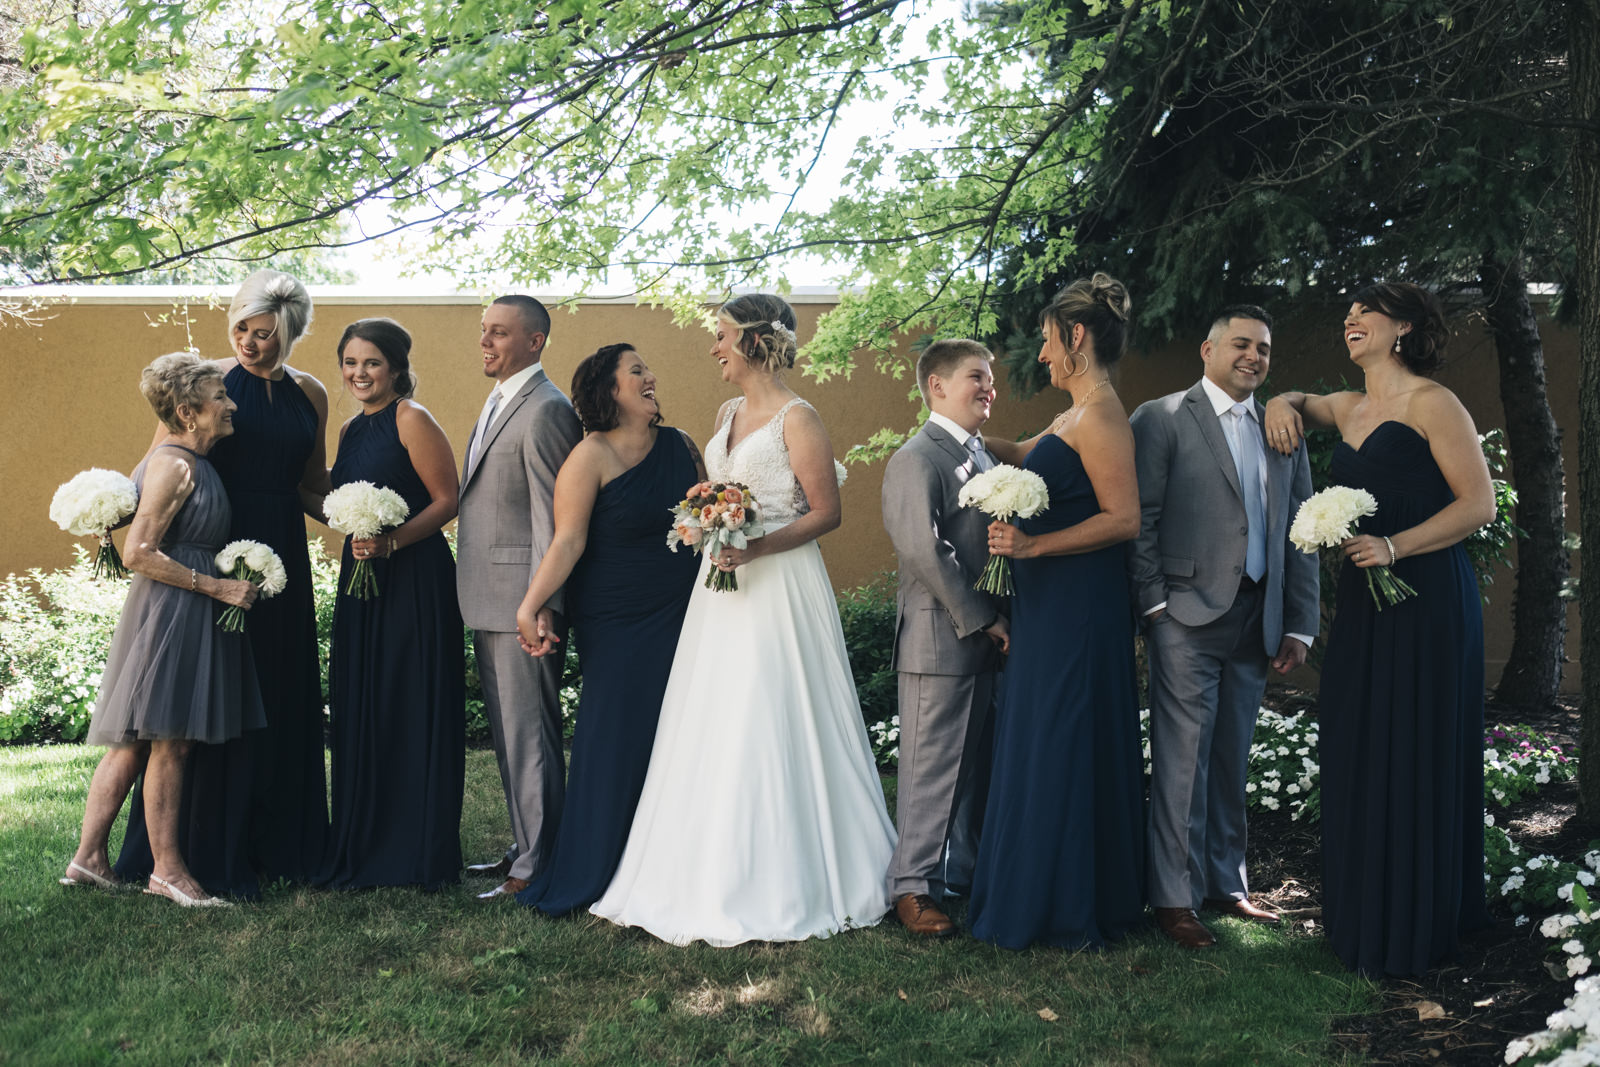 Bridesmaids and men stand around bride before her wedding ceremony in Navy blue dresses and white floral bouquets.